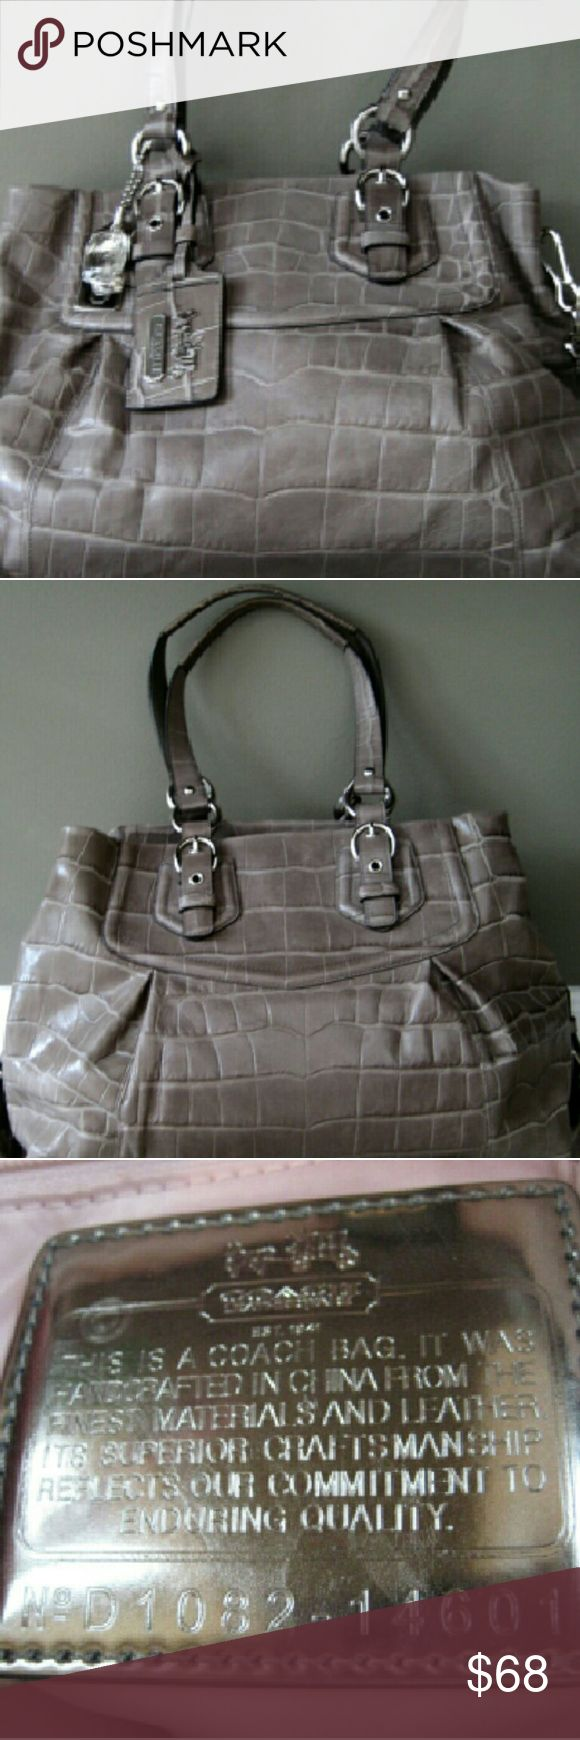 Coach Genuine Leather Large Carryall Bag Big Purse I ONLY WORE THIS BAG TWICE, ITS SUPER CLEAN AND FLAWLESS, AND COMES WITH ALL THE BELLS AND WHISTLES, EXCEPT THE REMOVABLE/OPTIONAL LONG SHOULDER STRAP IS MISSING! I THINK I ACCIDENTLY DONATED IT!  Like New Authentic Coach Limited Edition Madison Lucky Gem Bag Embossed Leather Carryall  Gorgeous Grey Croc-EMBOSSED Leather, with  perfect shiny silver hardware!  Model #14601 Magnetic Snap Closures Security Zipper compartment in the middle. 100%…